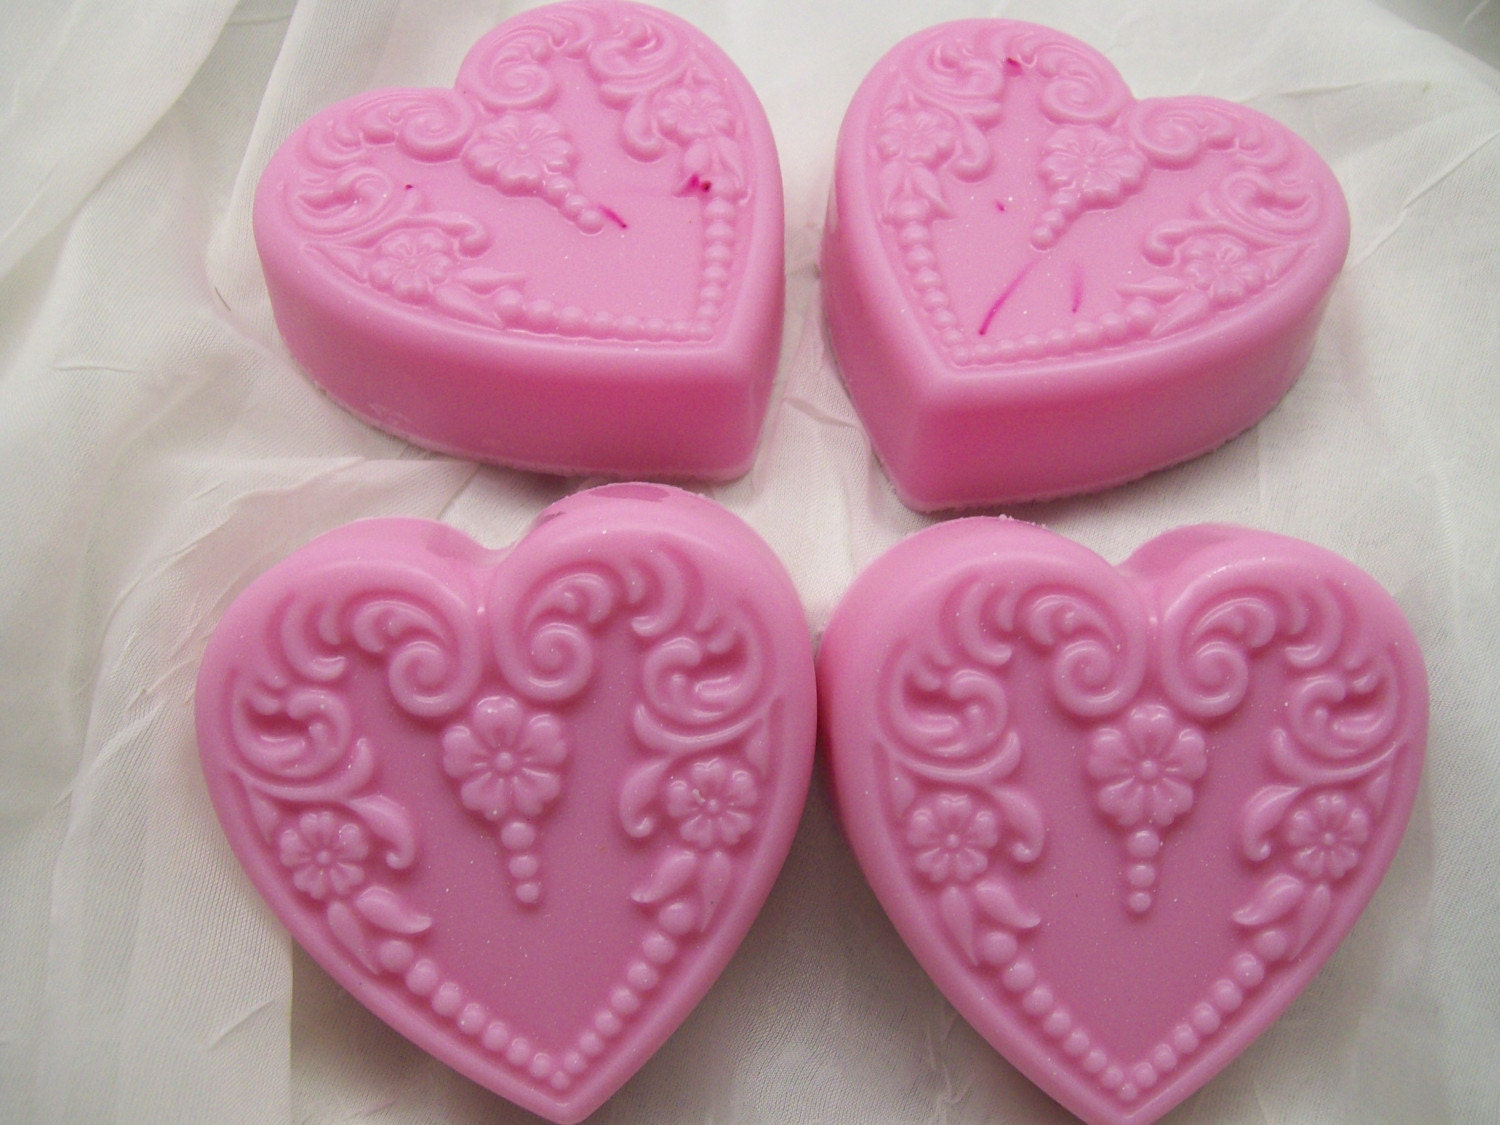 Chocolate Shea Butter Heart Shaped Soap